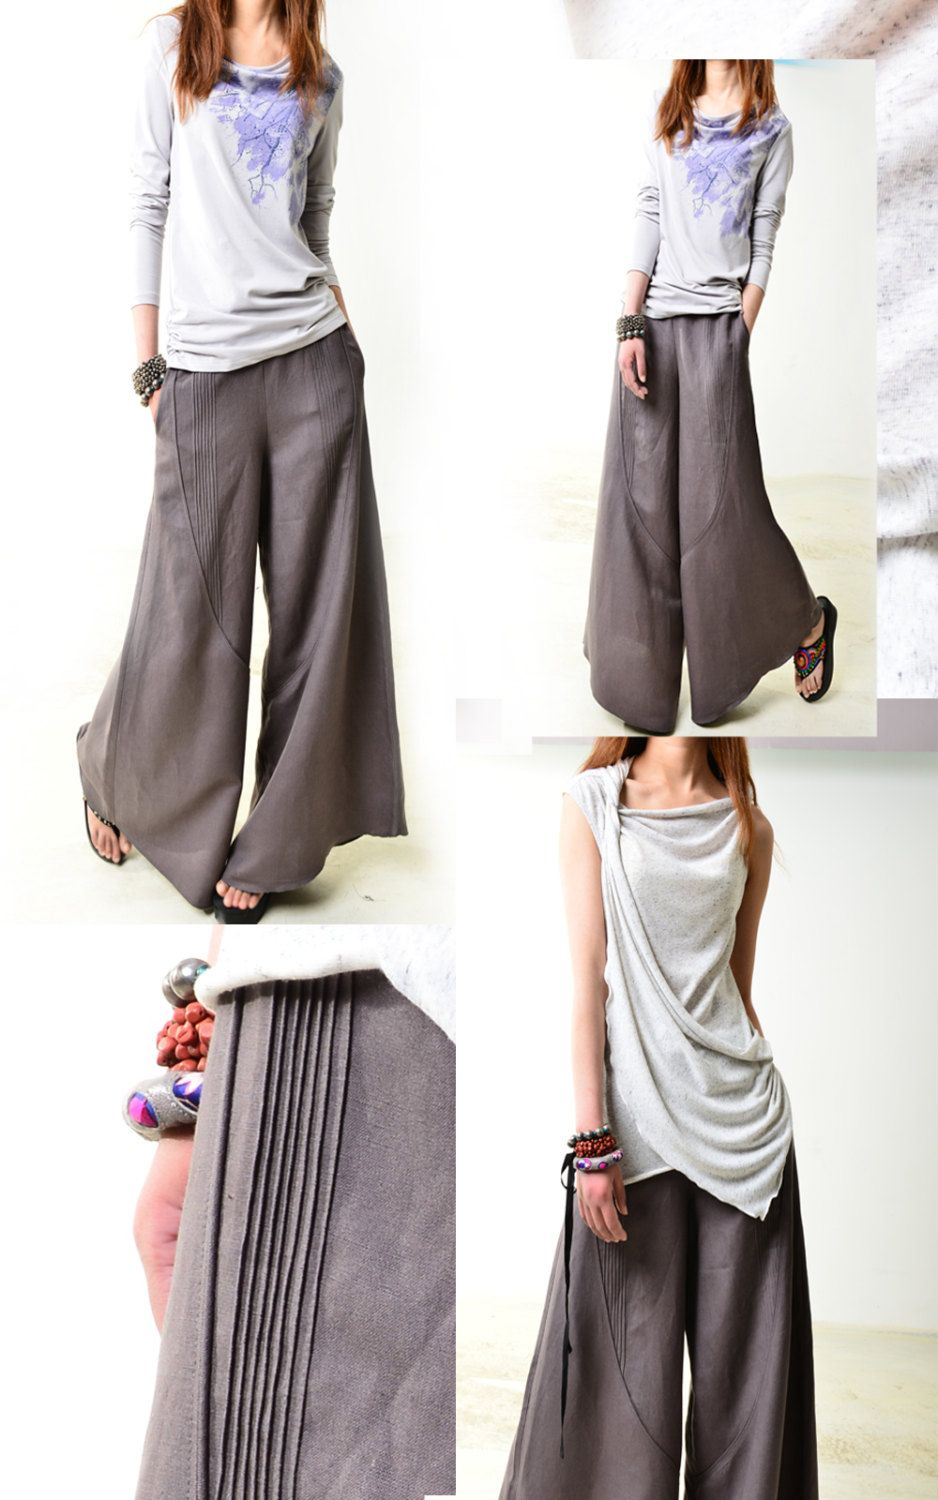 12f7c135fdd Moon forgot linen skirt pants K1206b от idea2lifestyle на Etsy ...